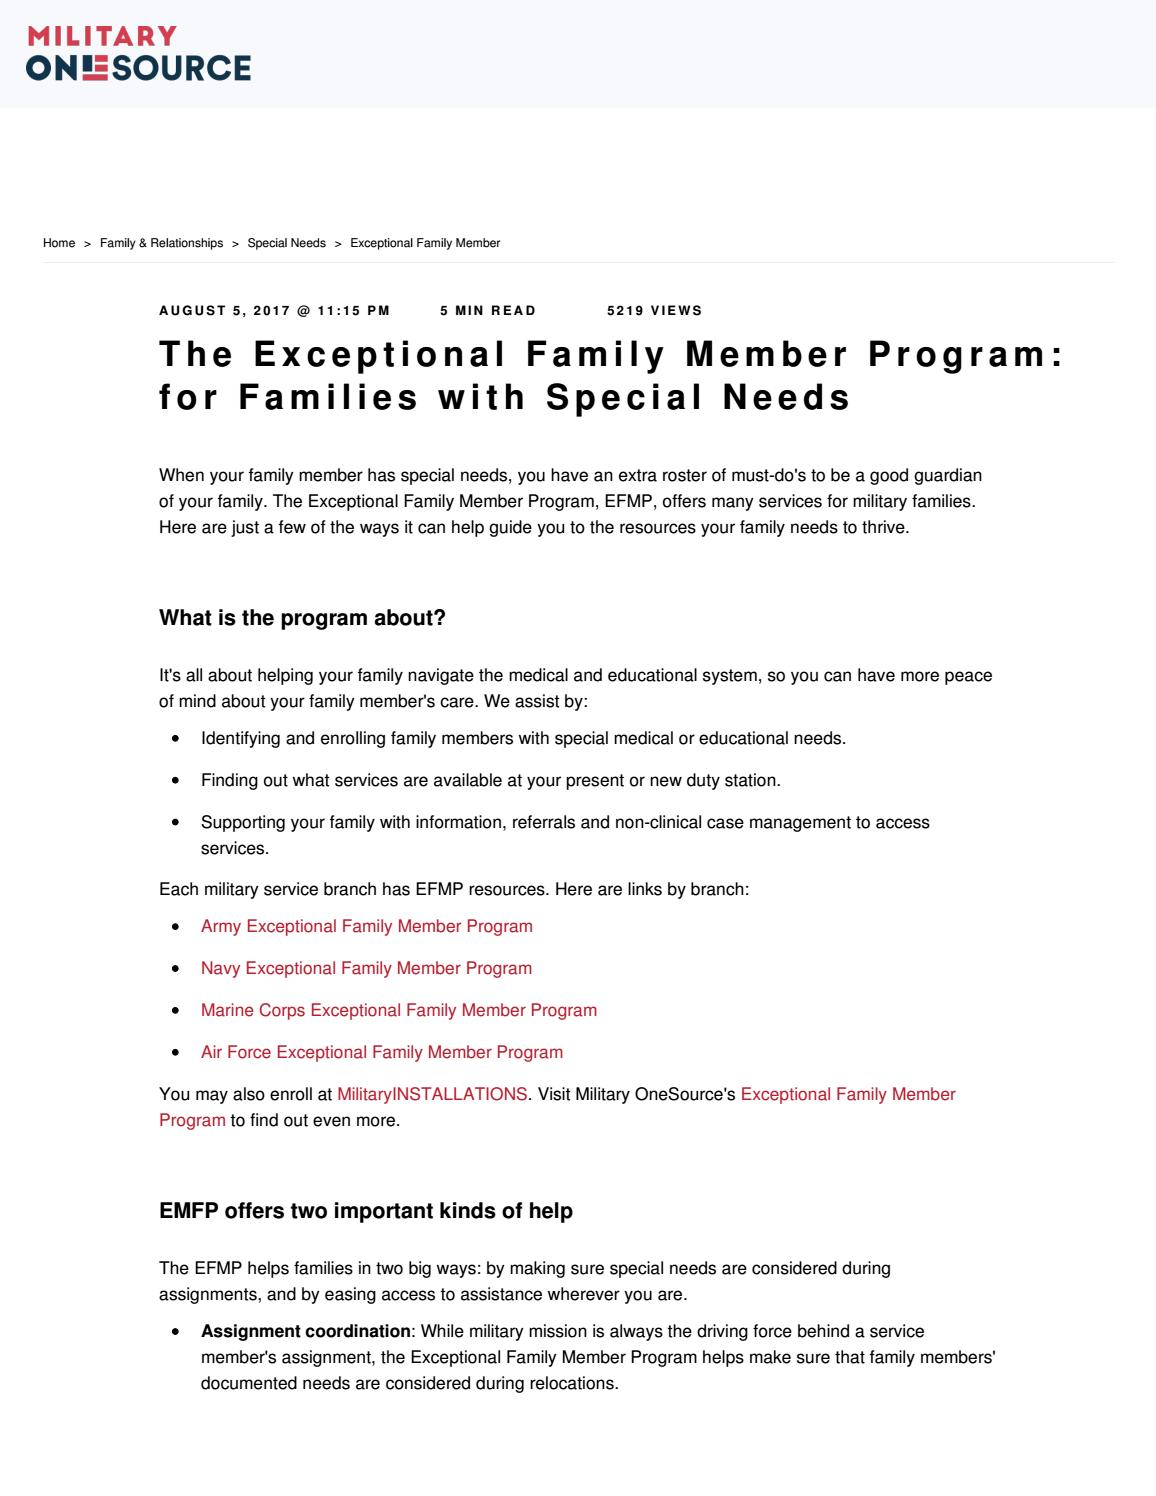 The Exceptional Family Member Program by HHC, 807th MC(DS